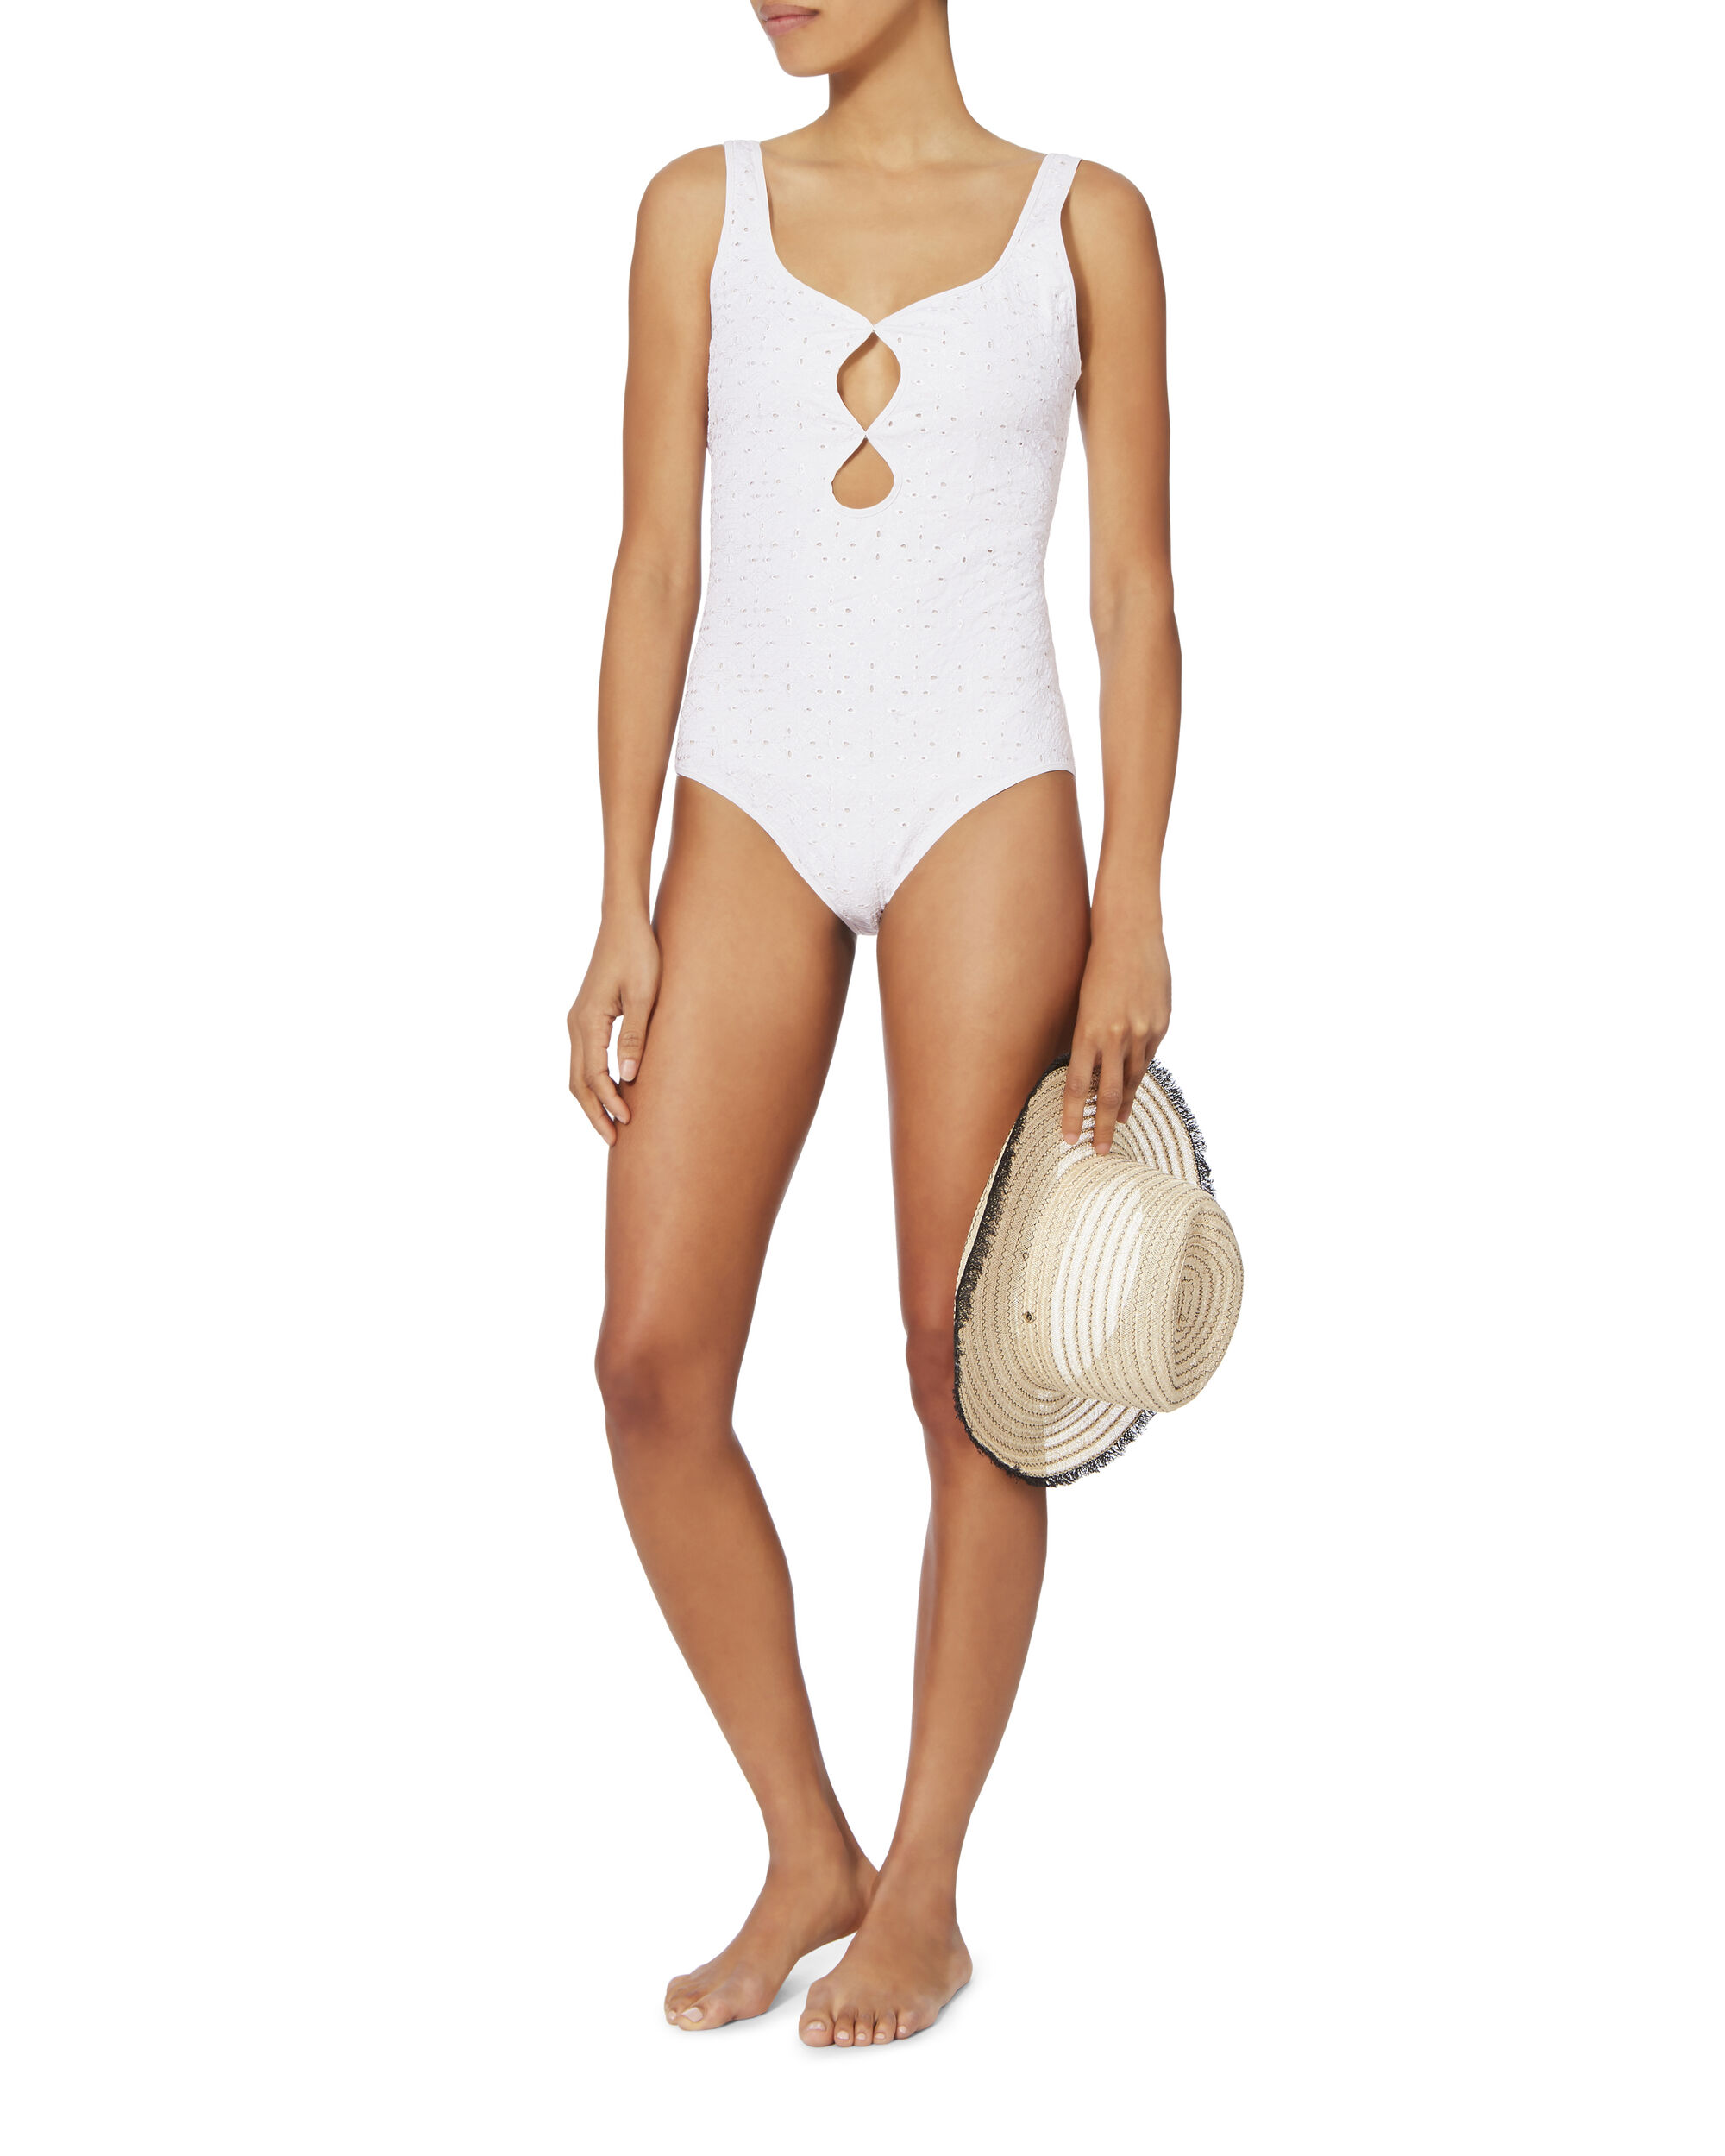 Scallop Trim Eyelet One Piece Swimsuit, WHITE, hi-res